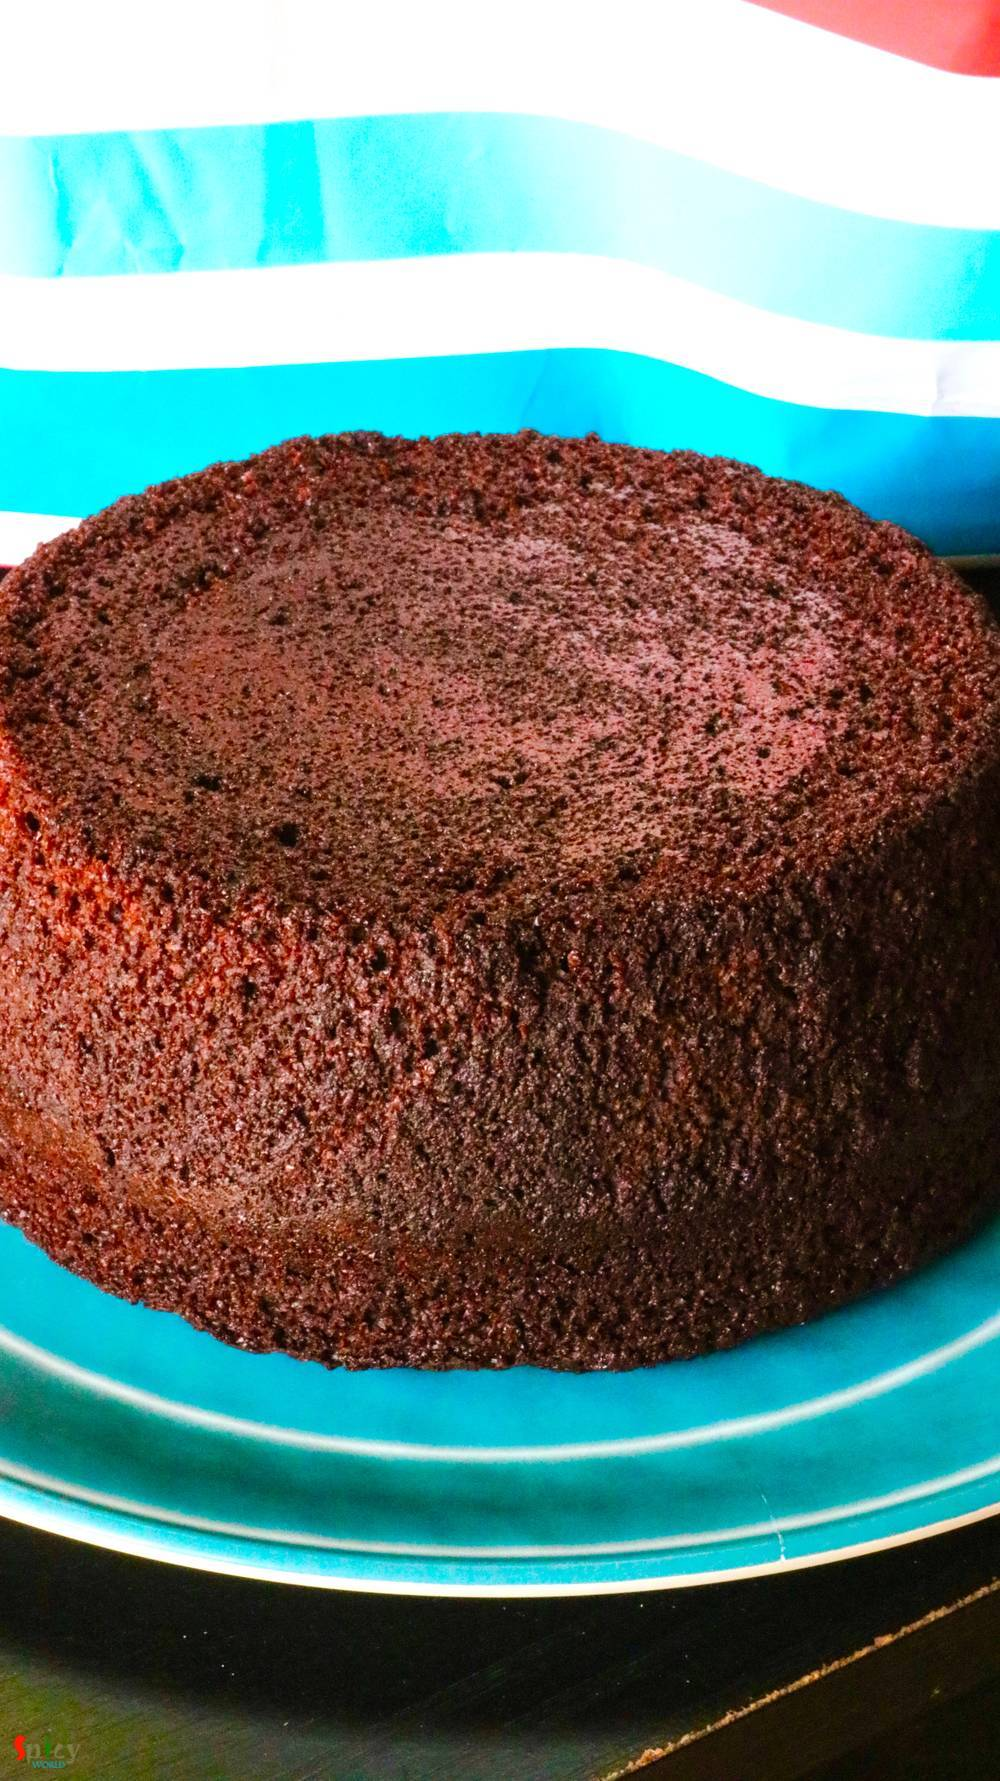 Cooking Step: Basic Chocolate Cake